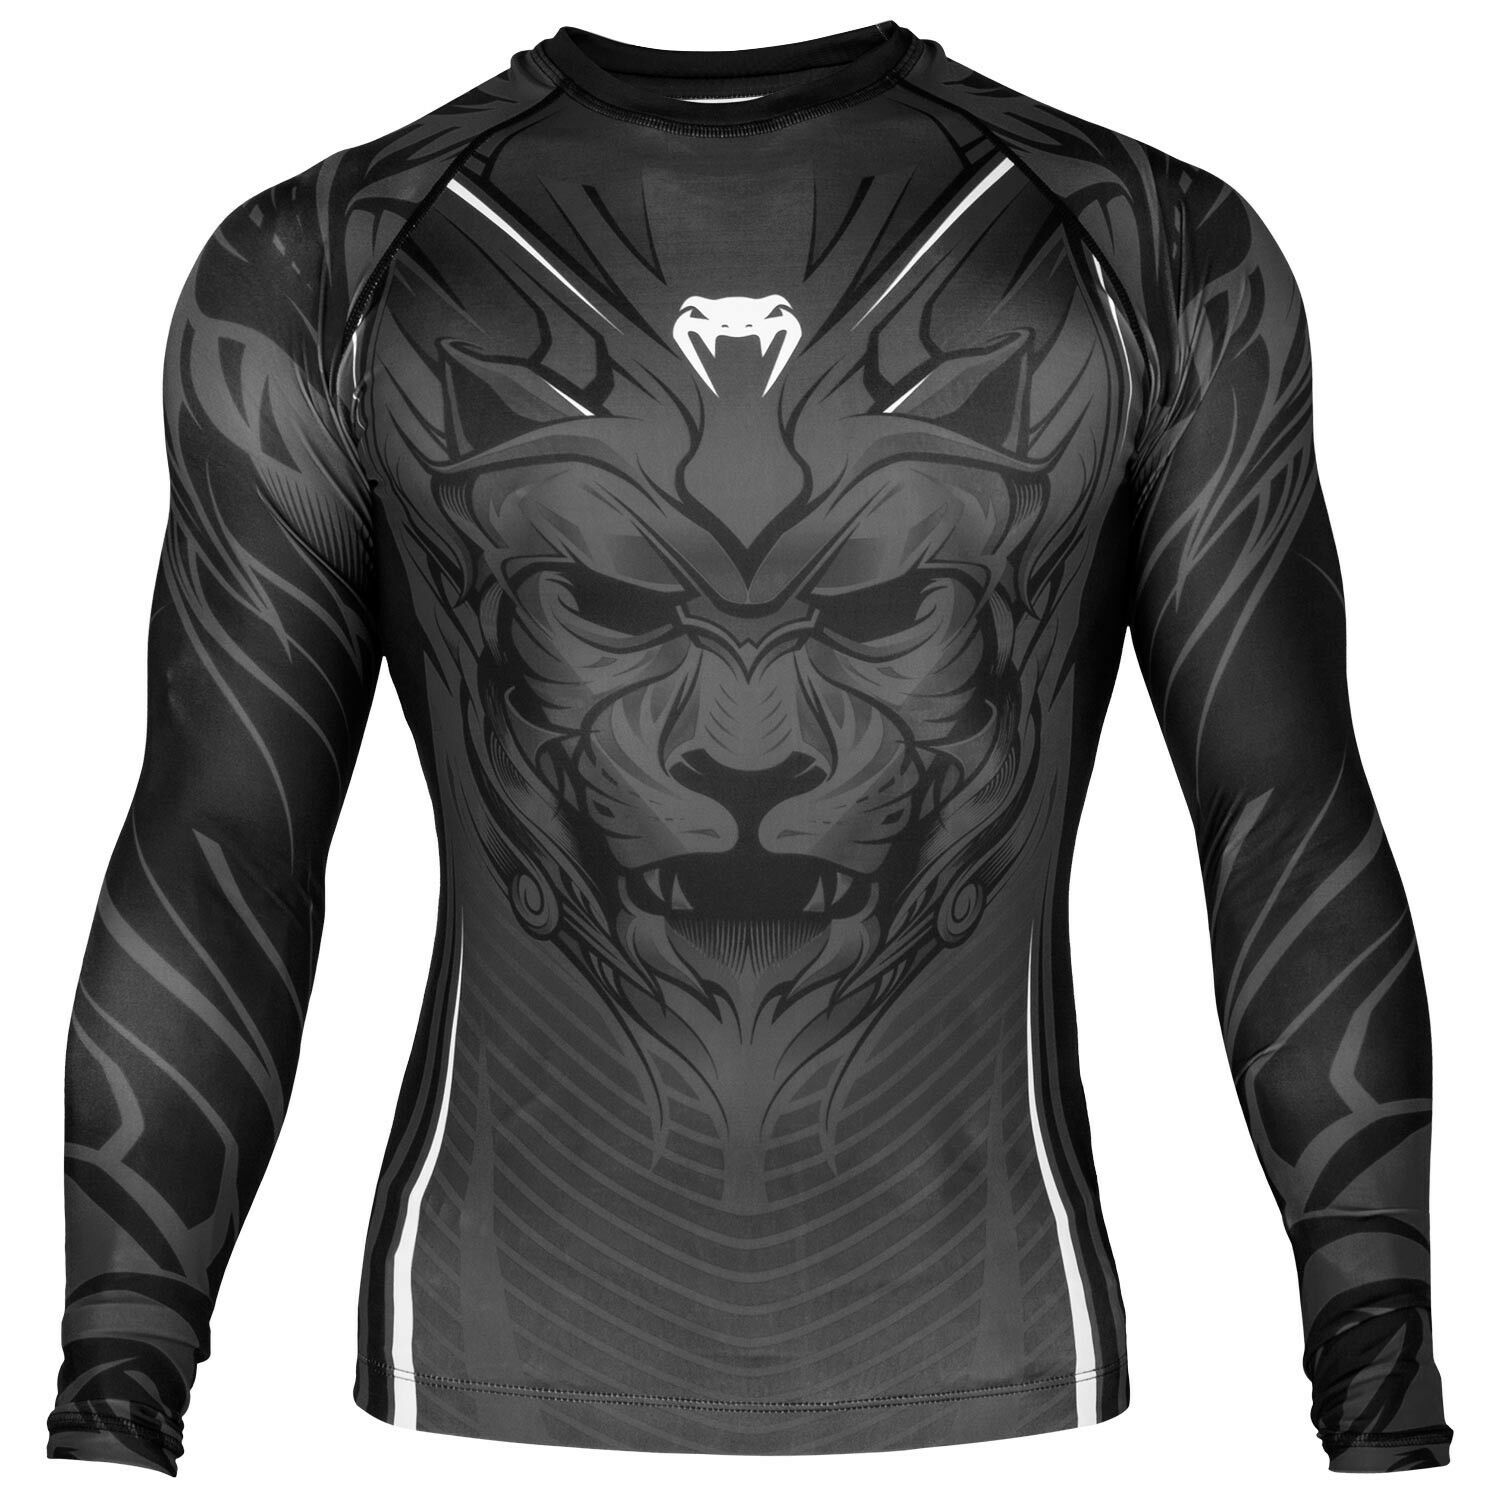 VENUM BLOODY ROAR RASHGUARD COMPRESSION SHIRT - LONG SLEEVES - GREY